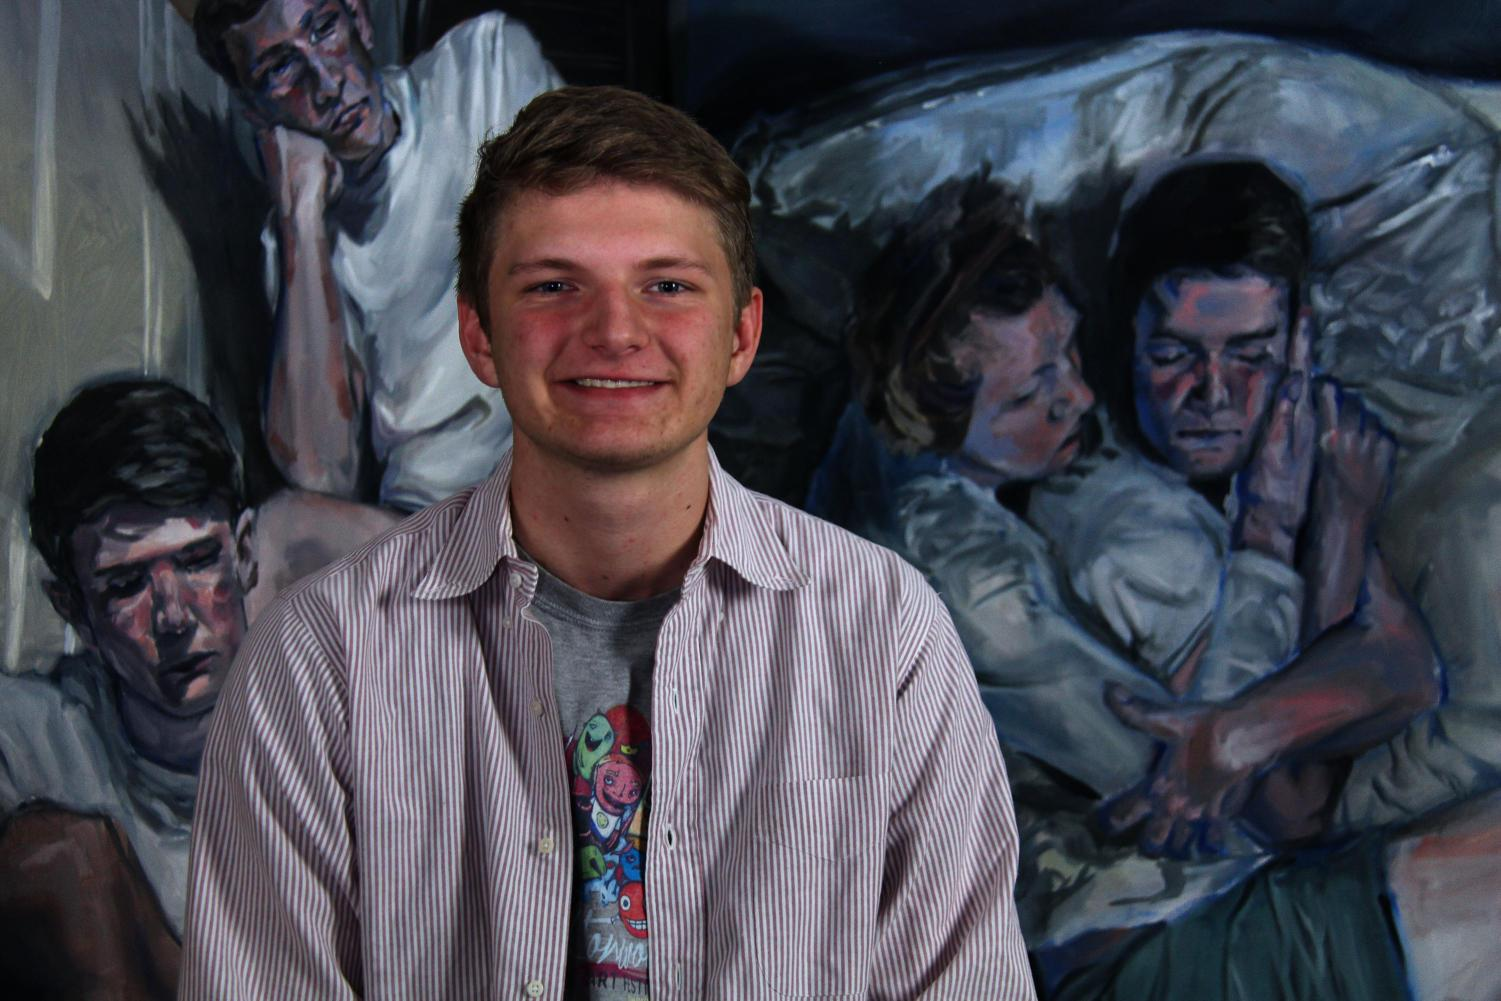 Senior Eli Ruhala has been an artist since freshman year. He plans to go to Maryland Institute College of Art.